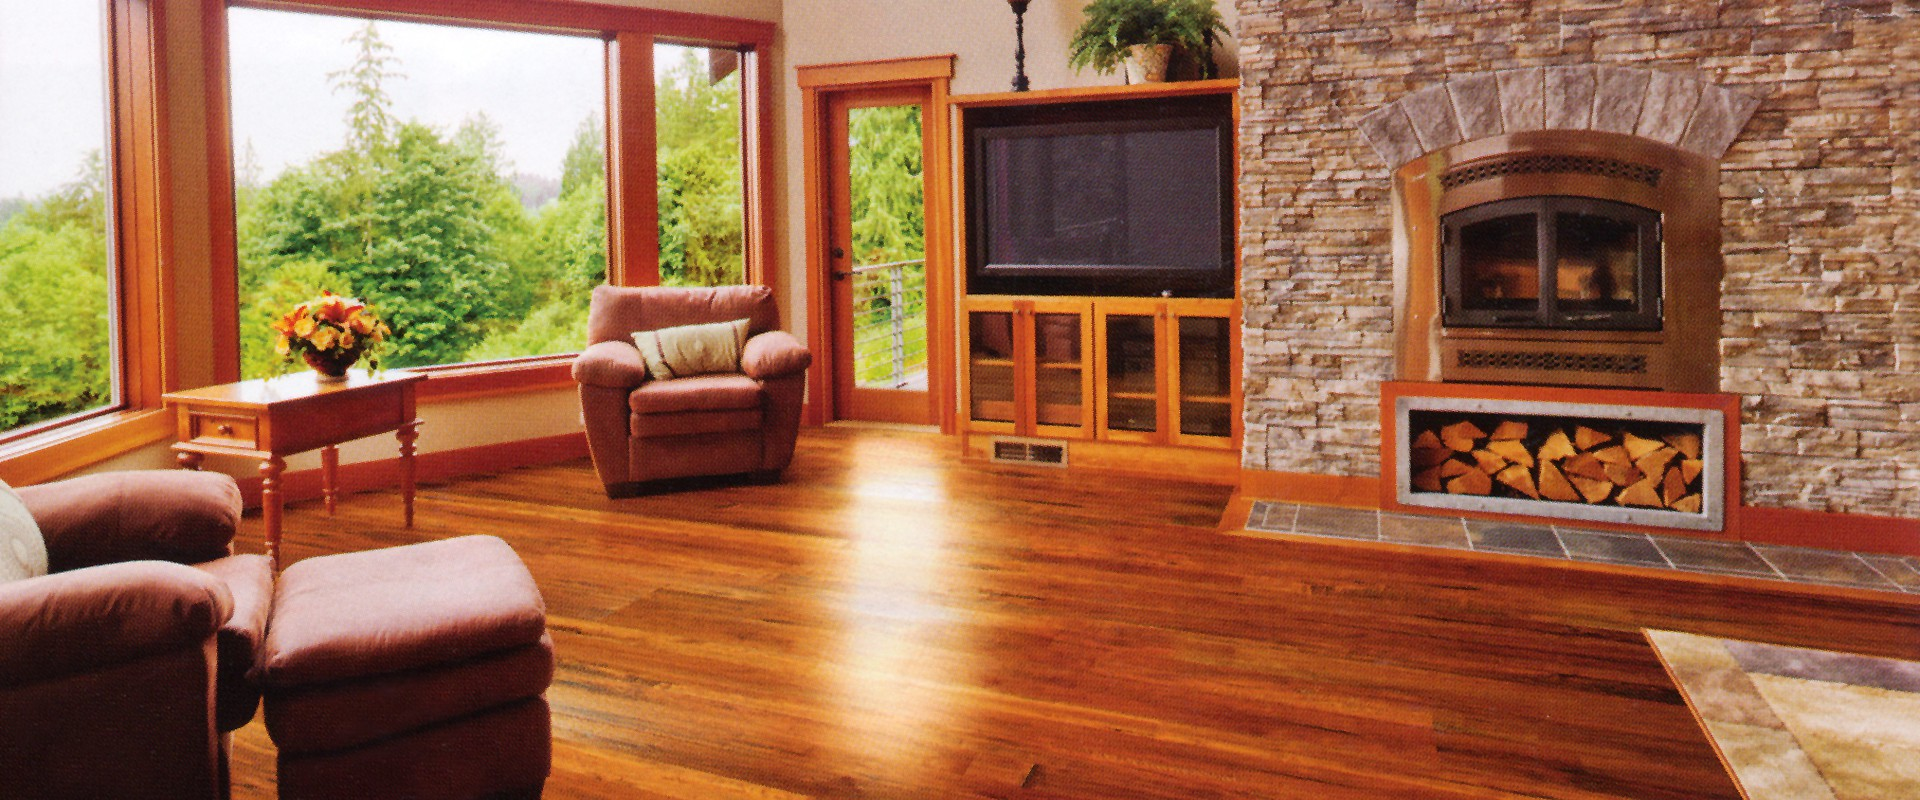 D S Floor Covering Hardwood Flooring Specialist Fairfax Va